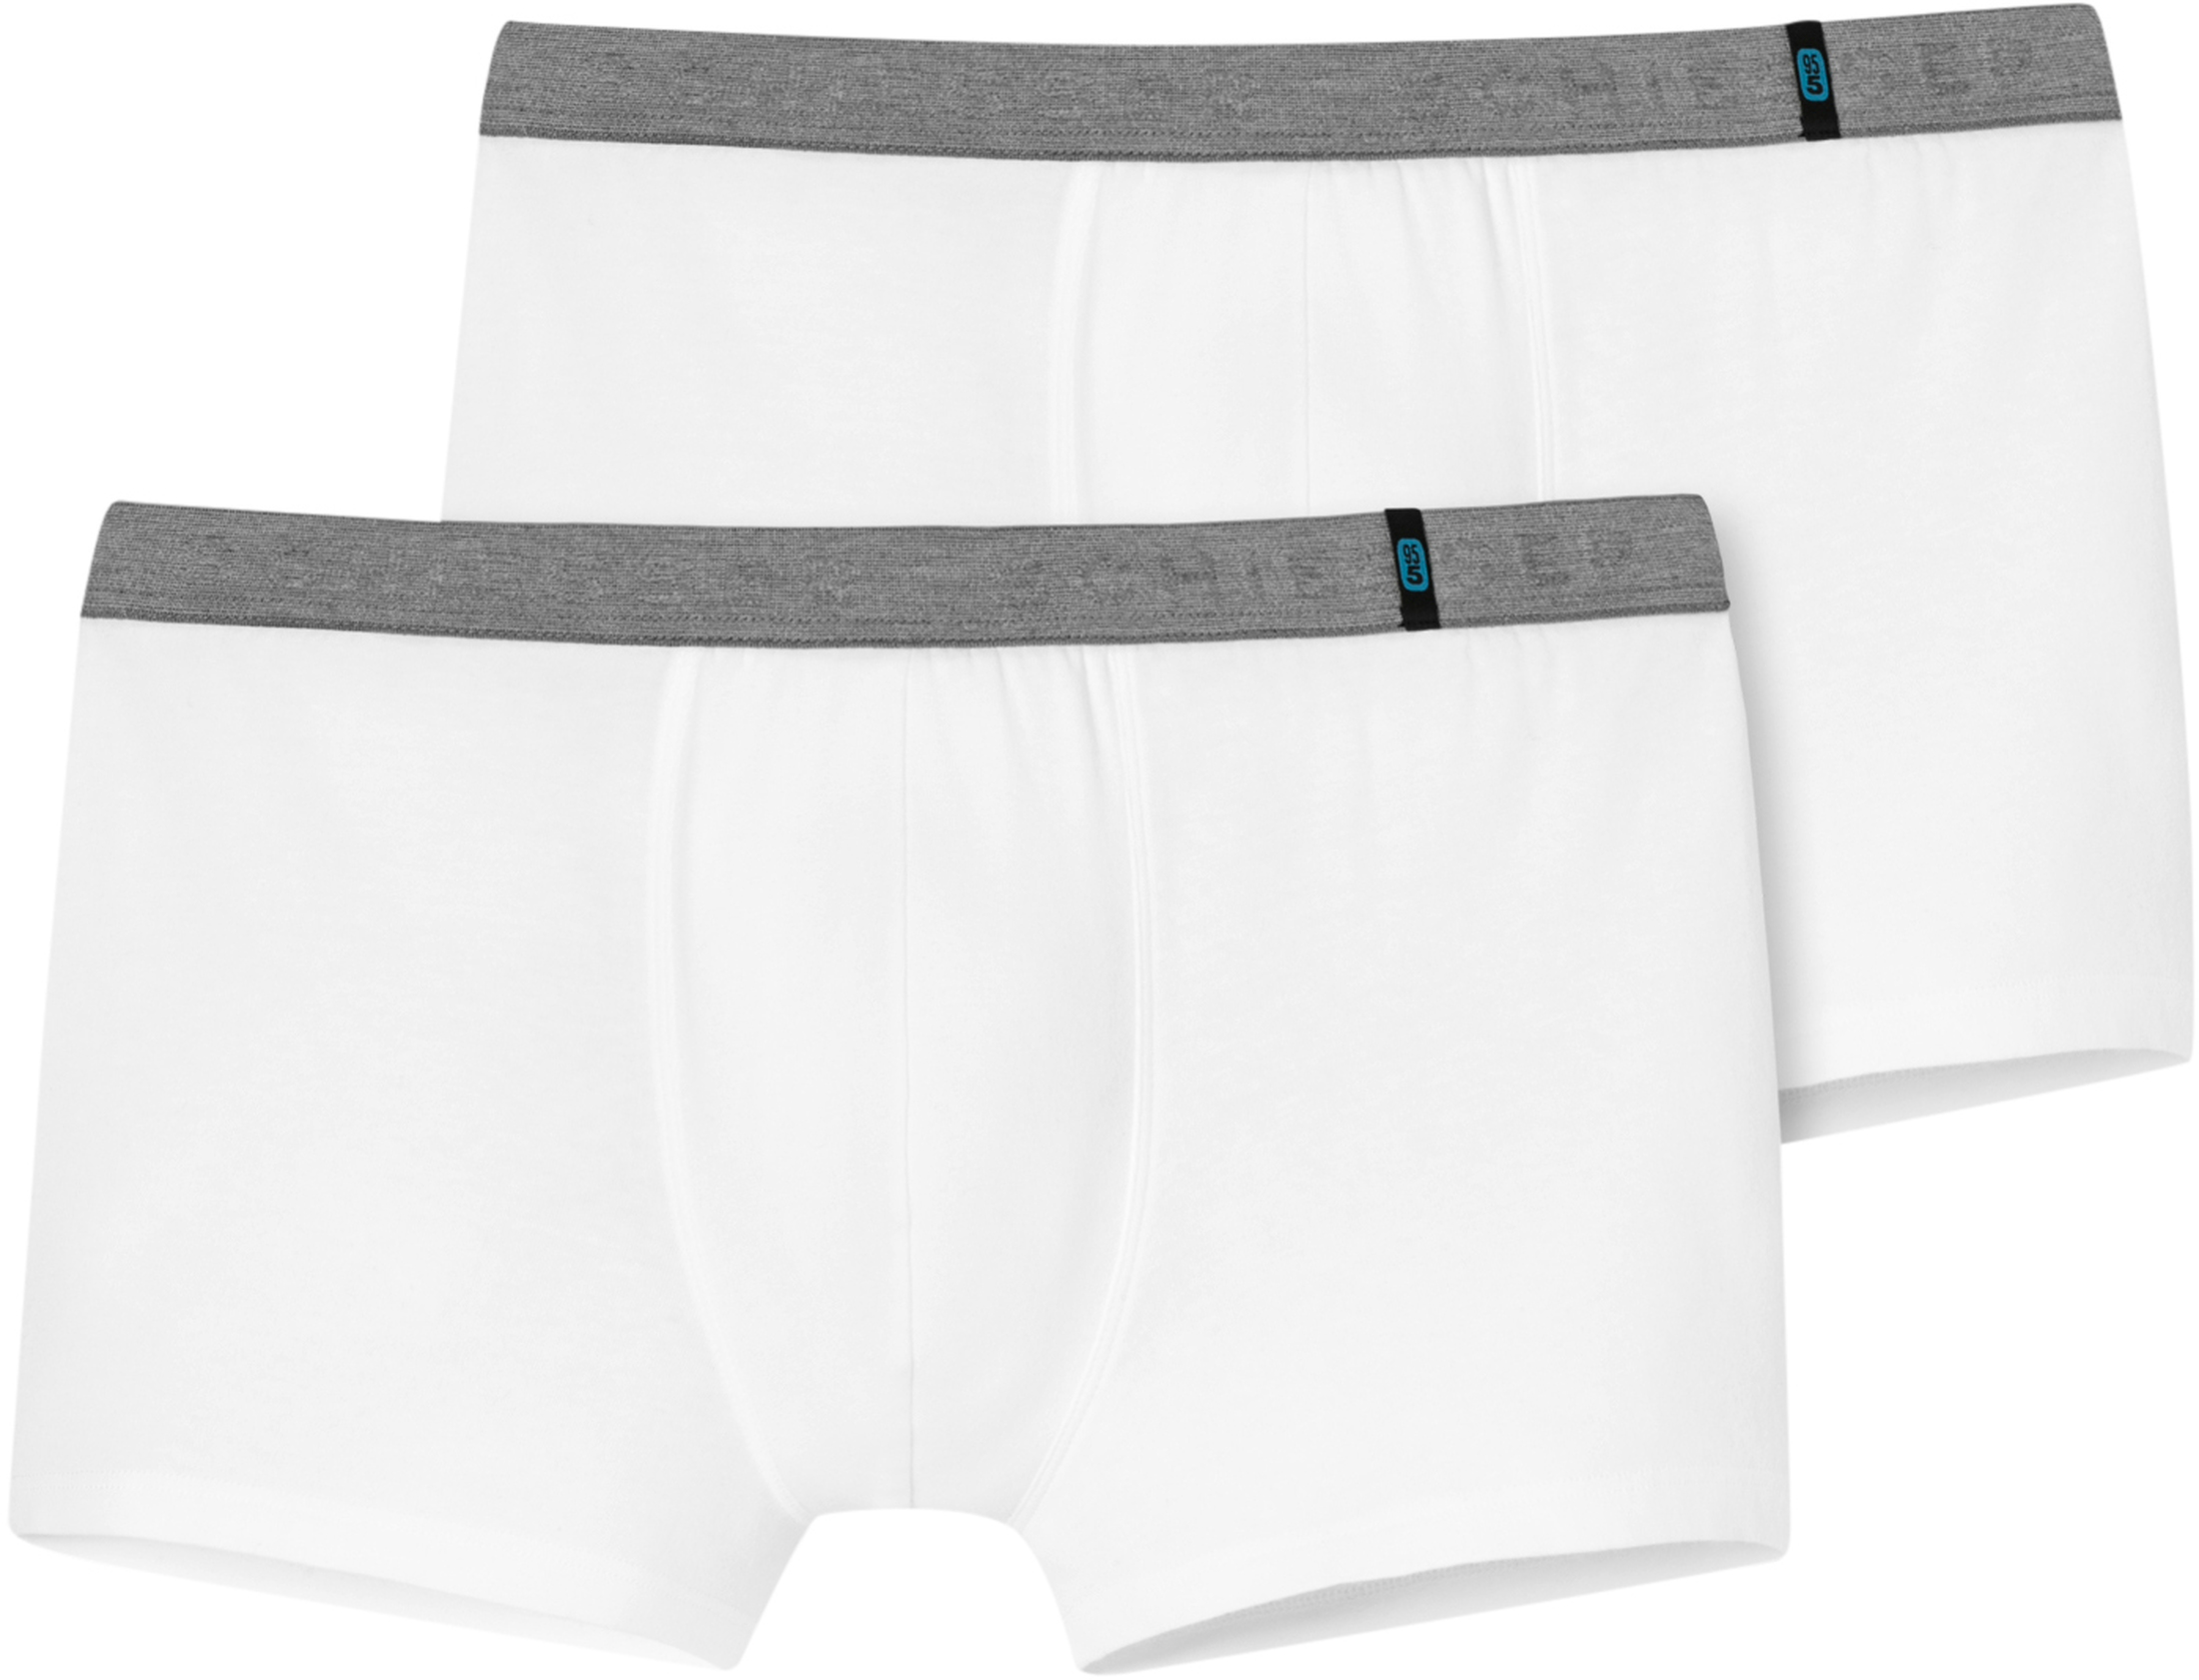 Schiesser Shorts White Grey (2Pack)